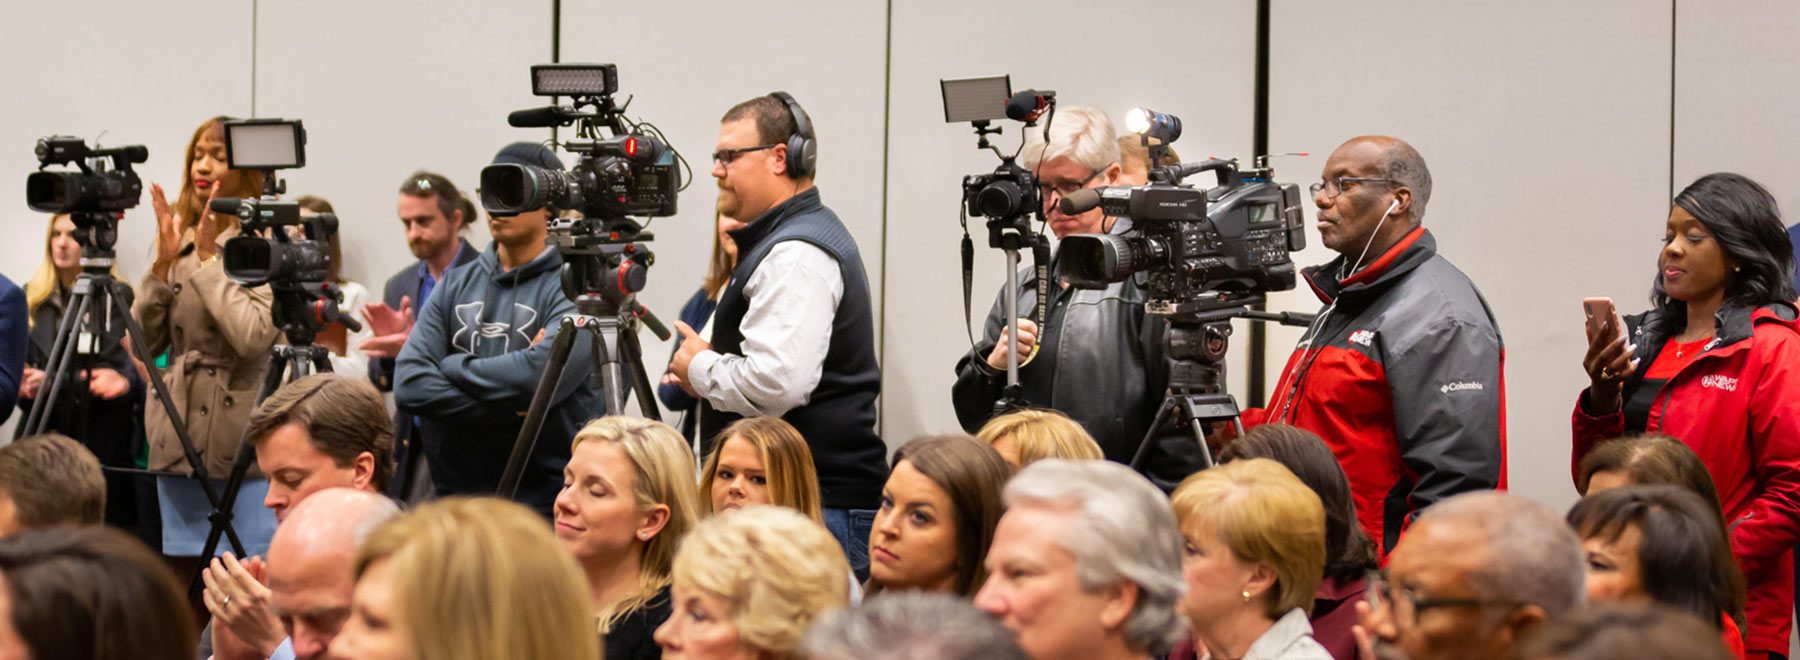 Video cameras in the back of the room during an event.